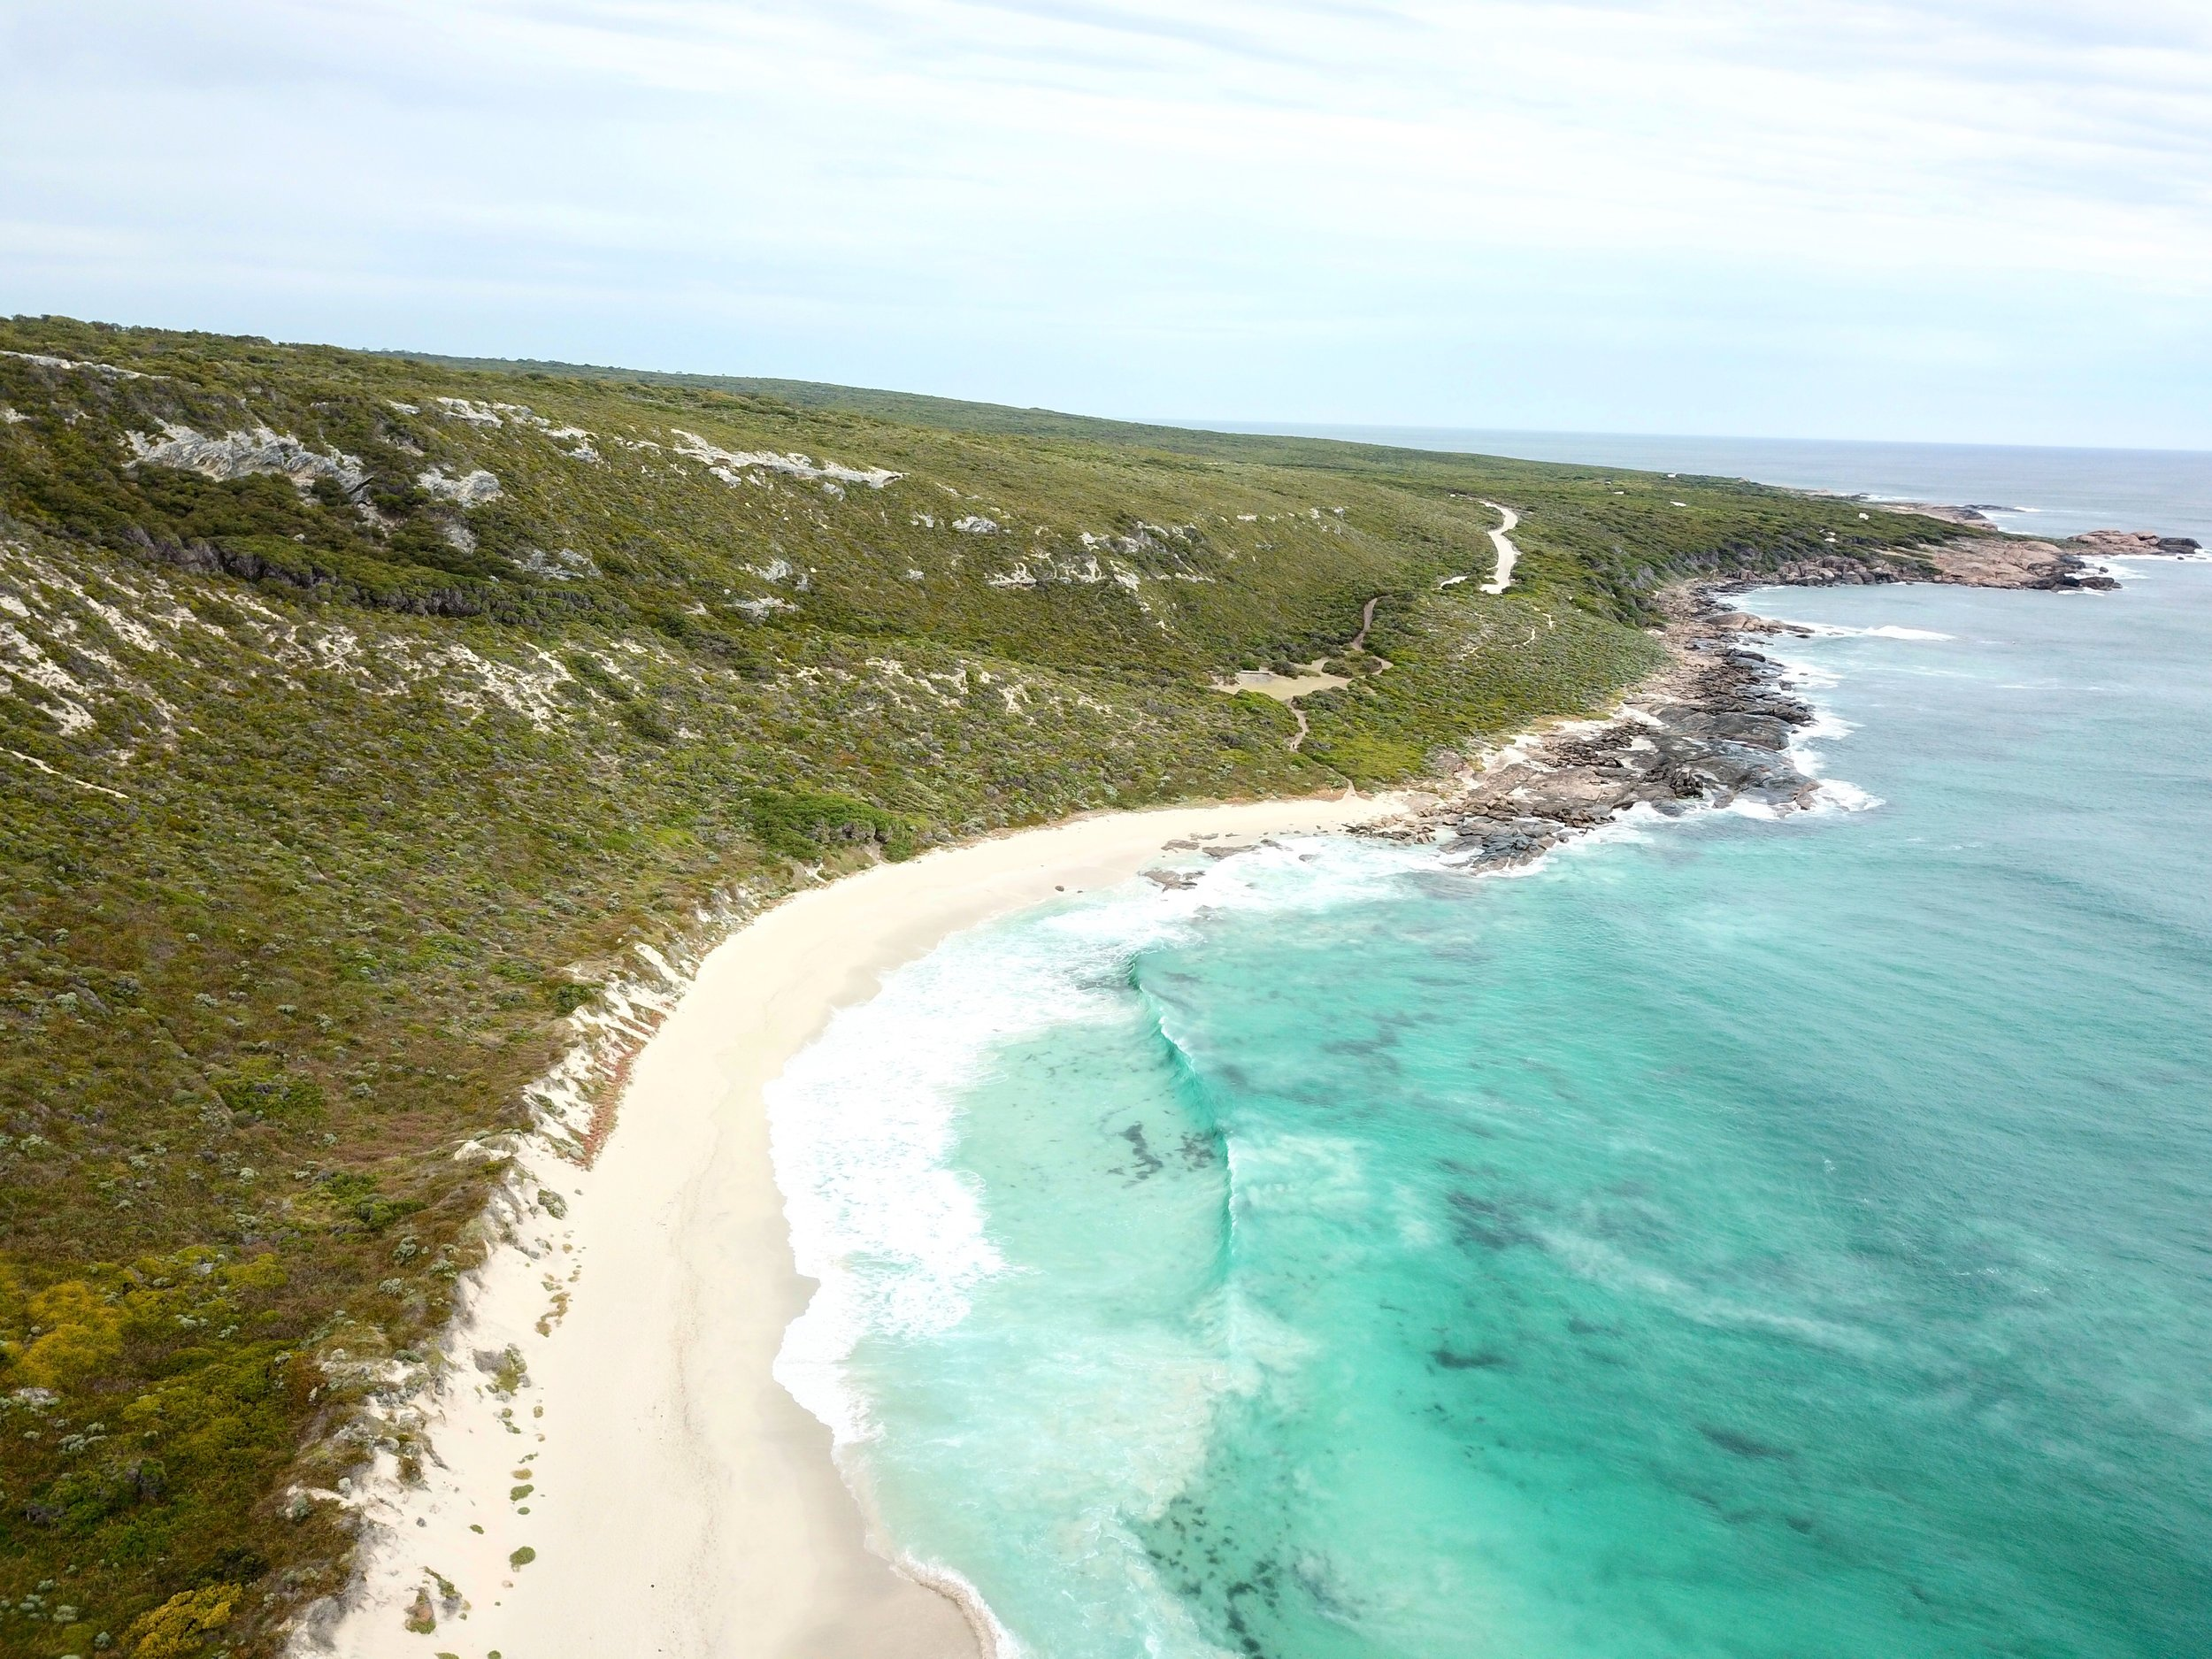 View from the top of the Contos Cliffs, along the Cape to Cape track.